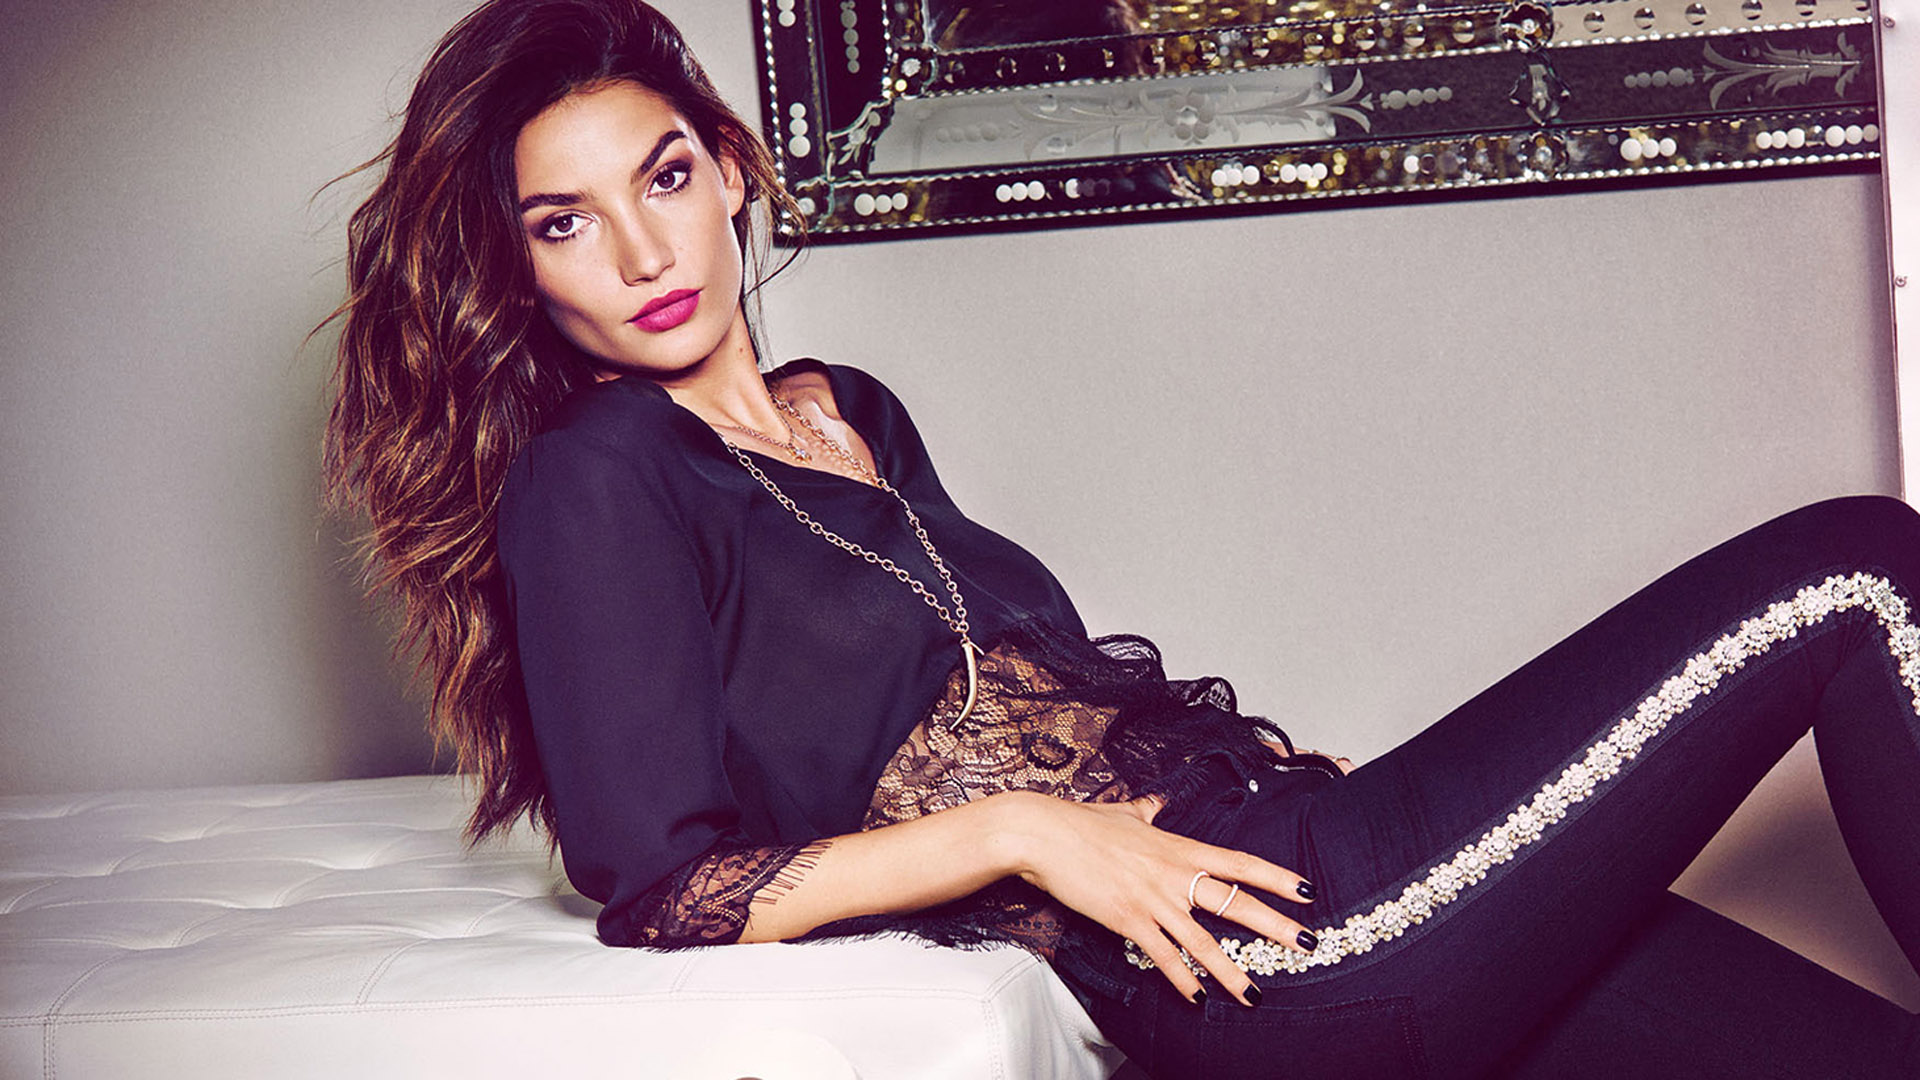 sexy lily aldridge outfit wallpaper 66712